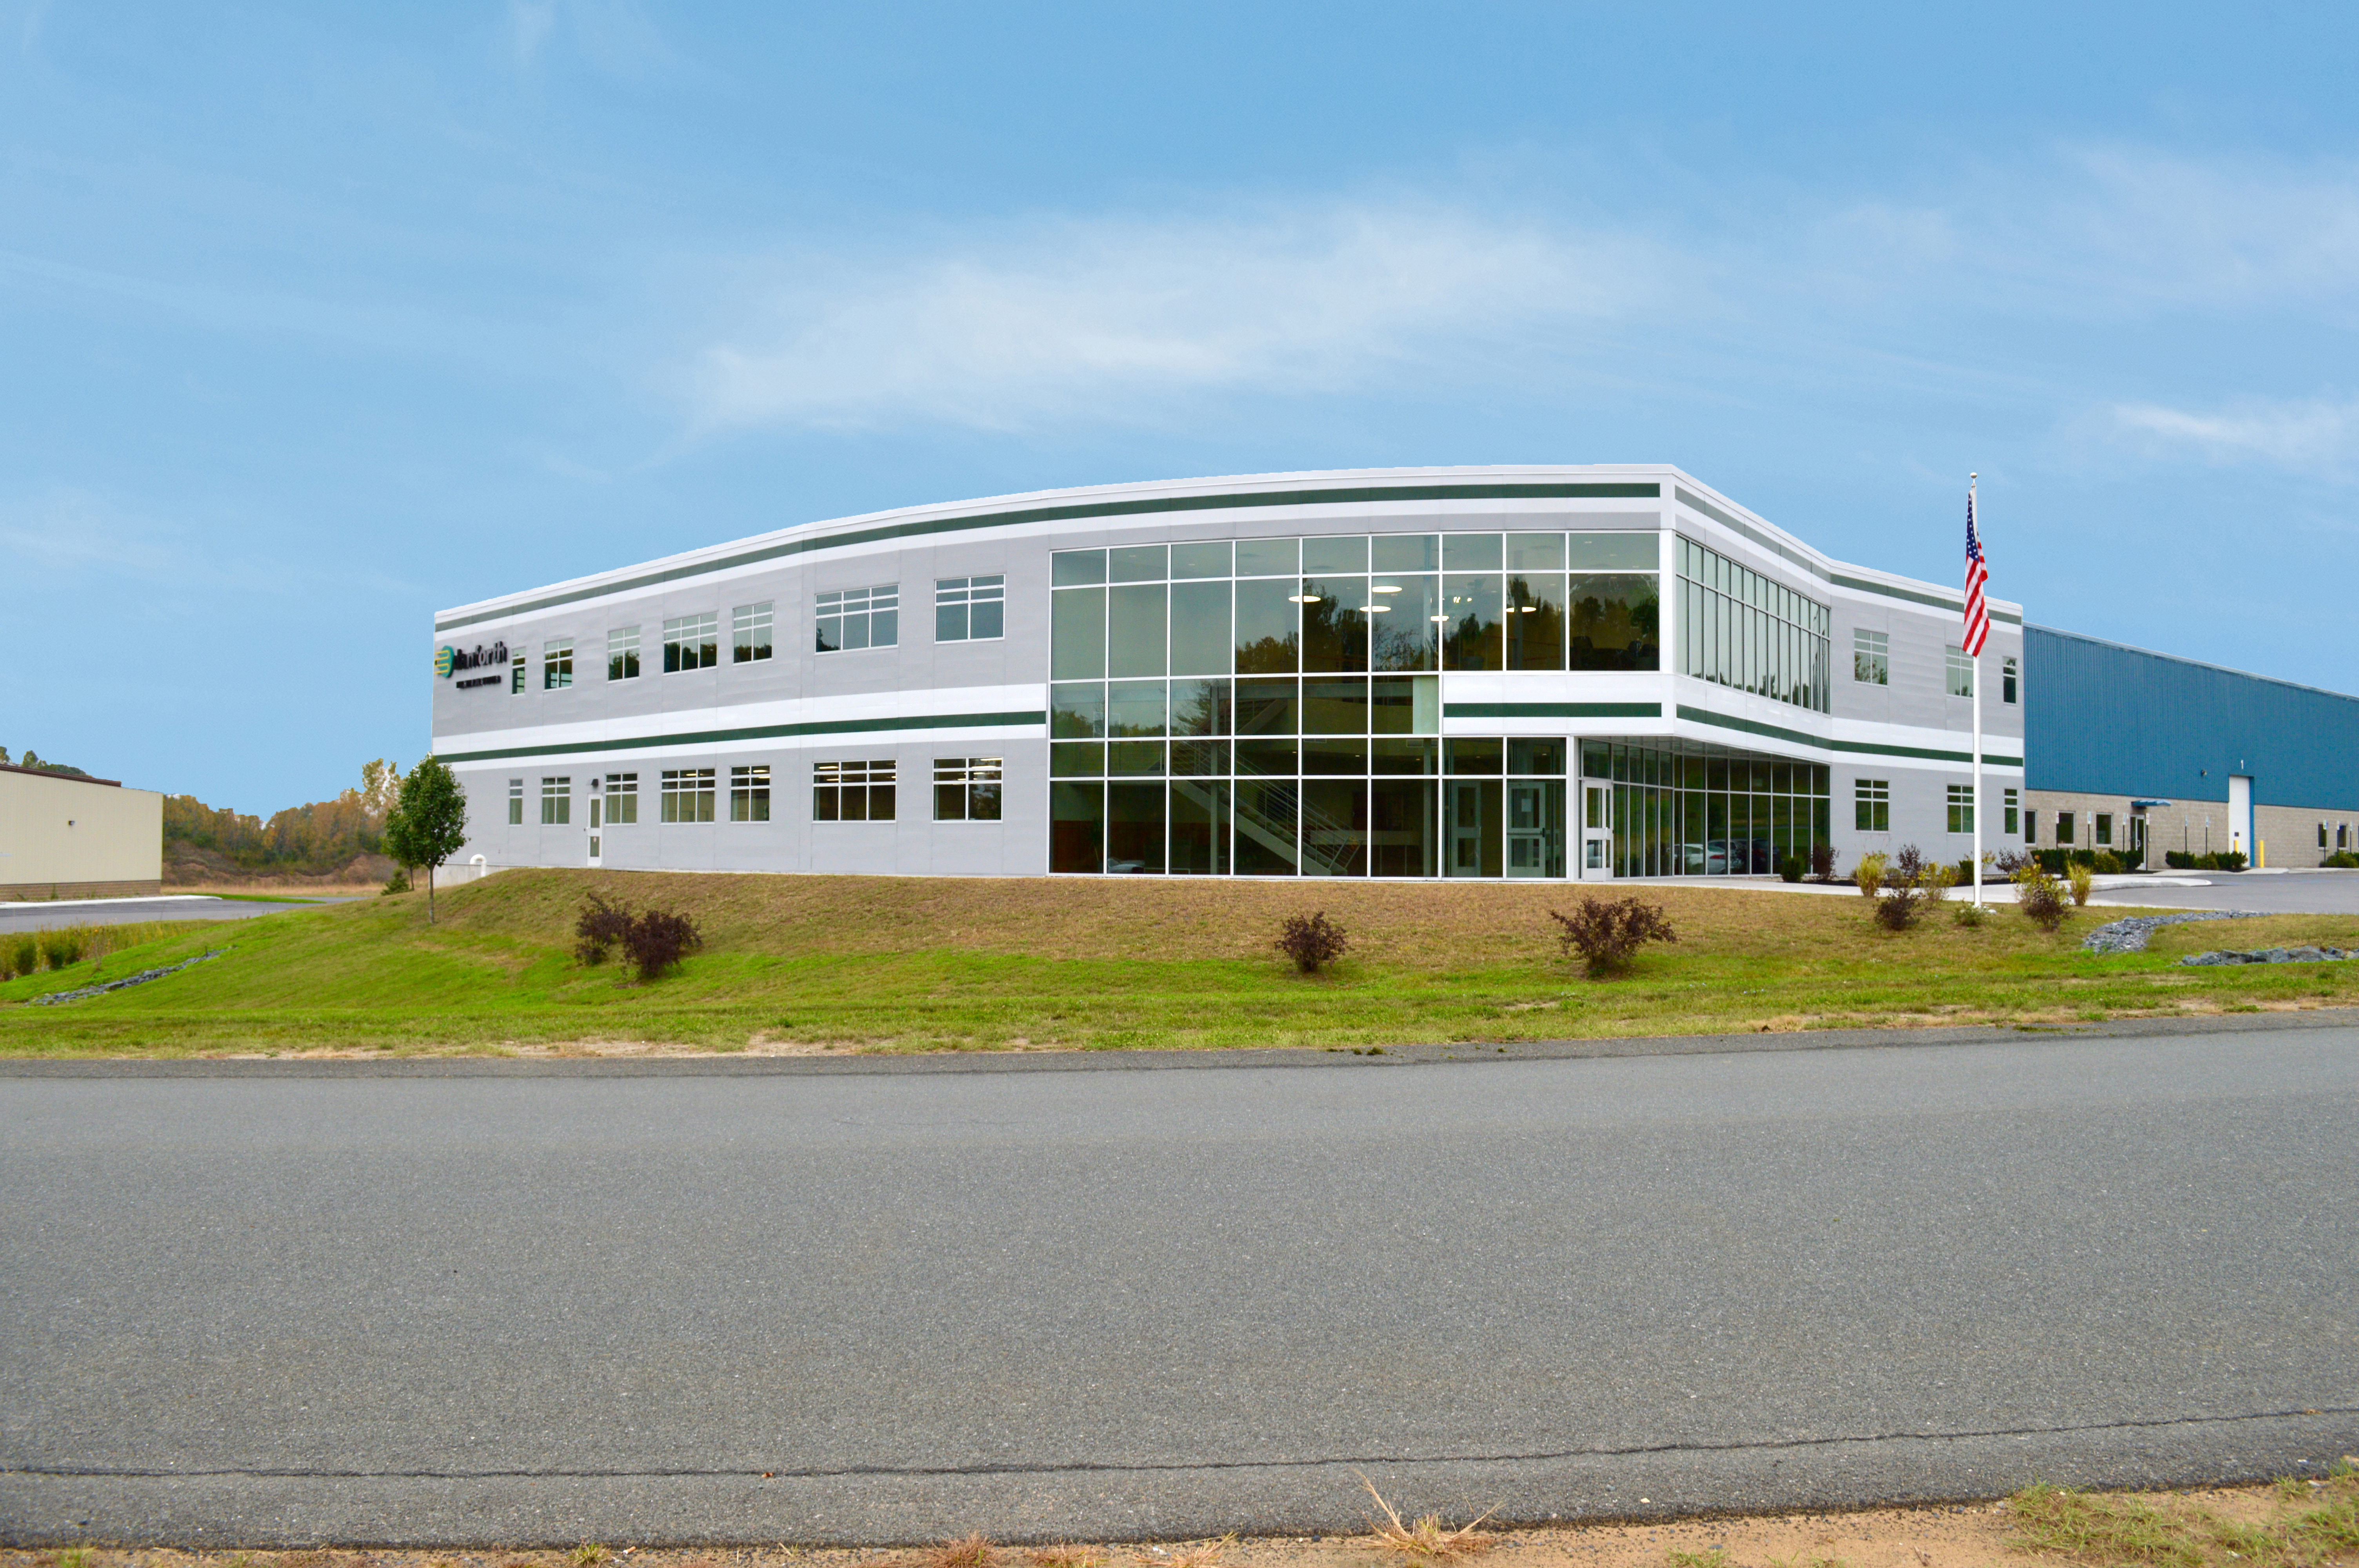 Danforth's Albany Office in Clifton Park, NY